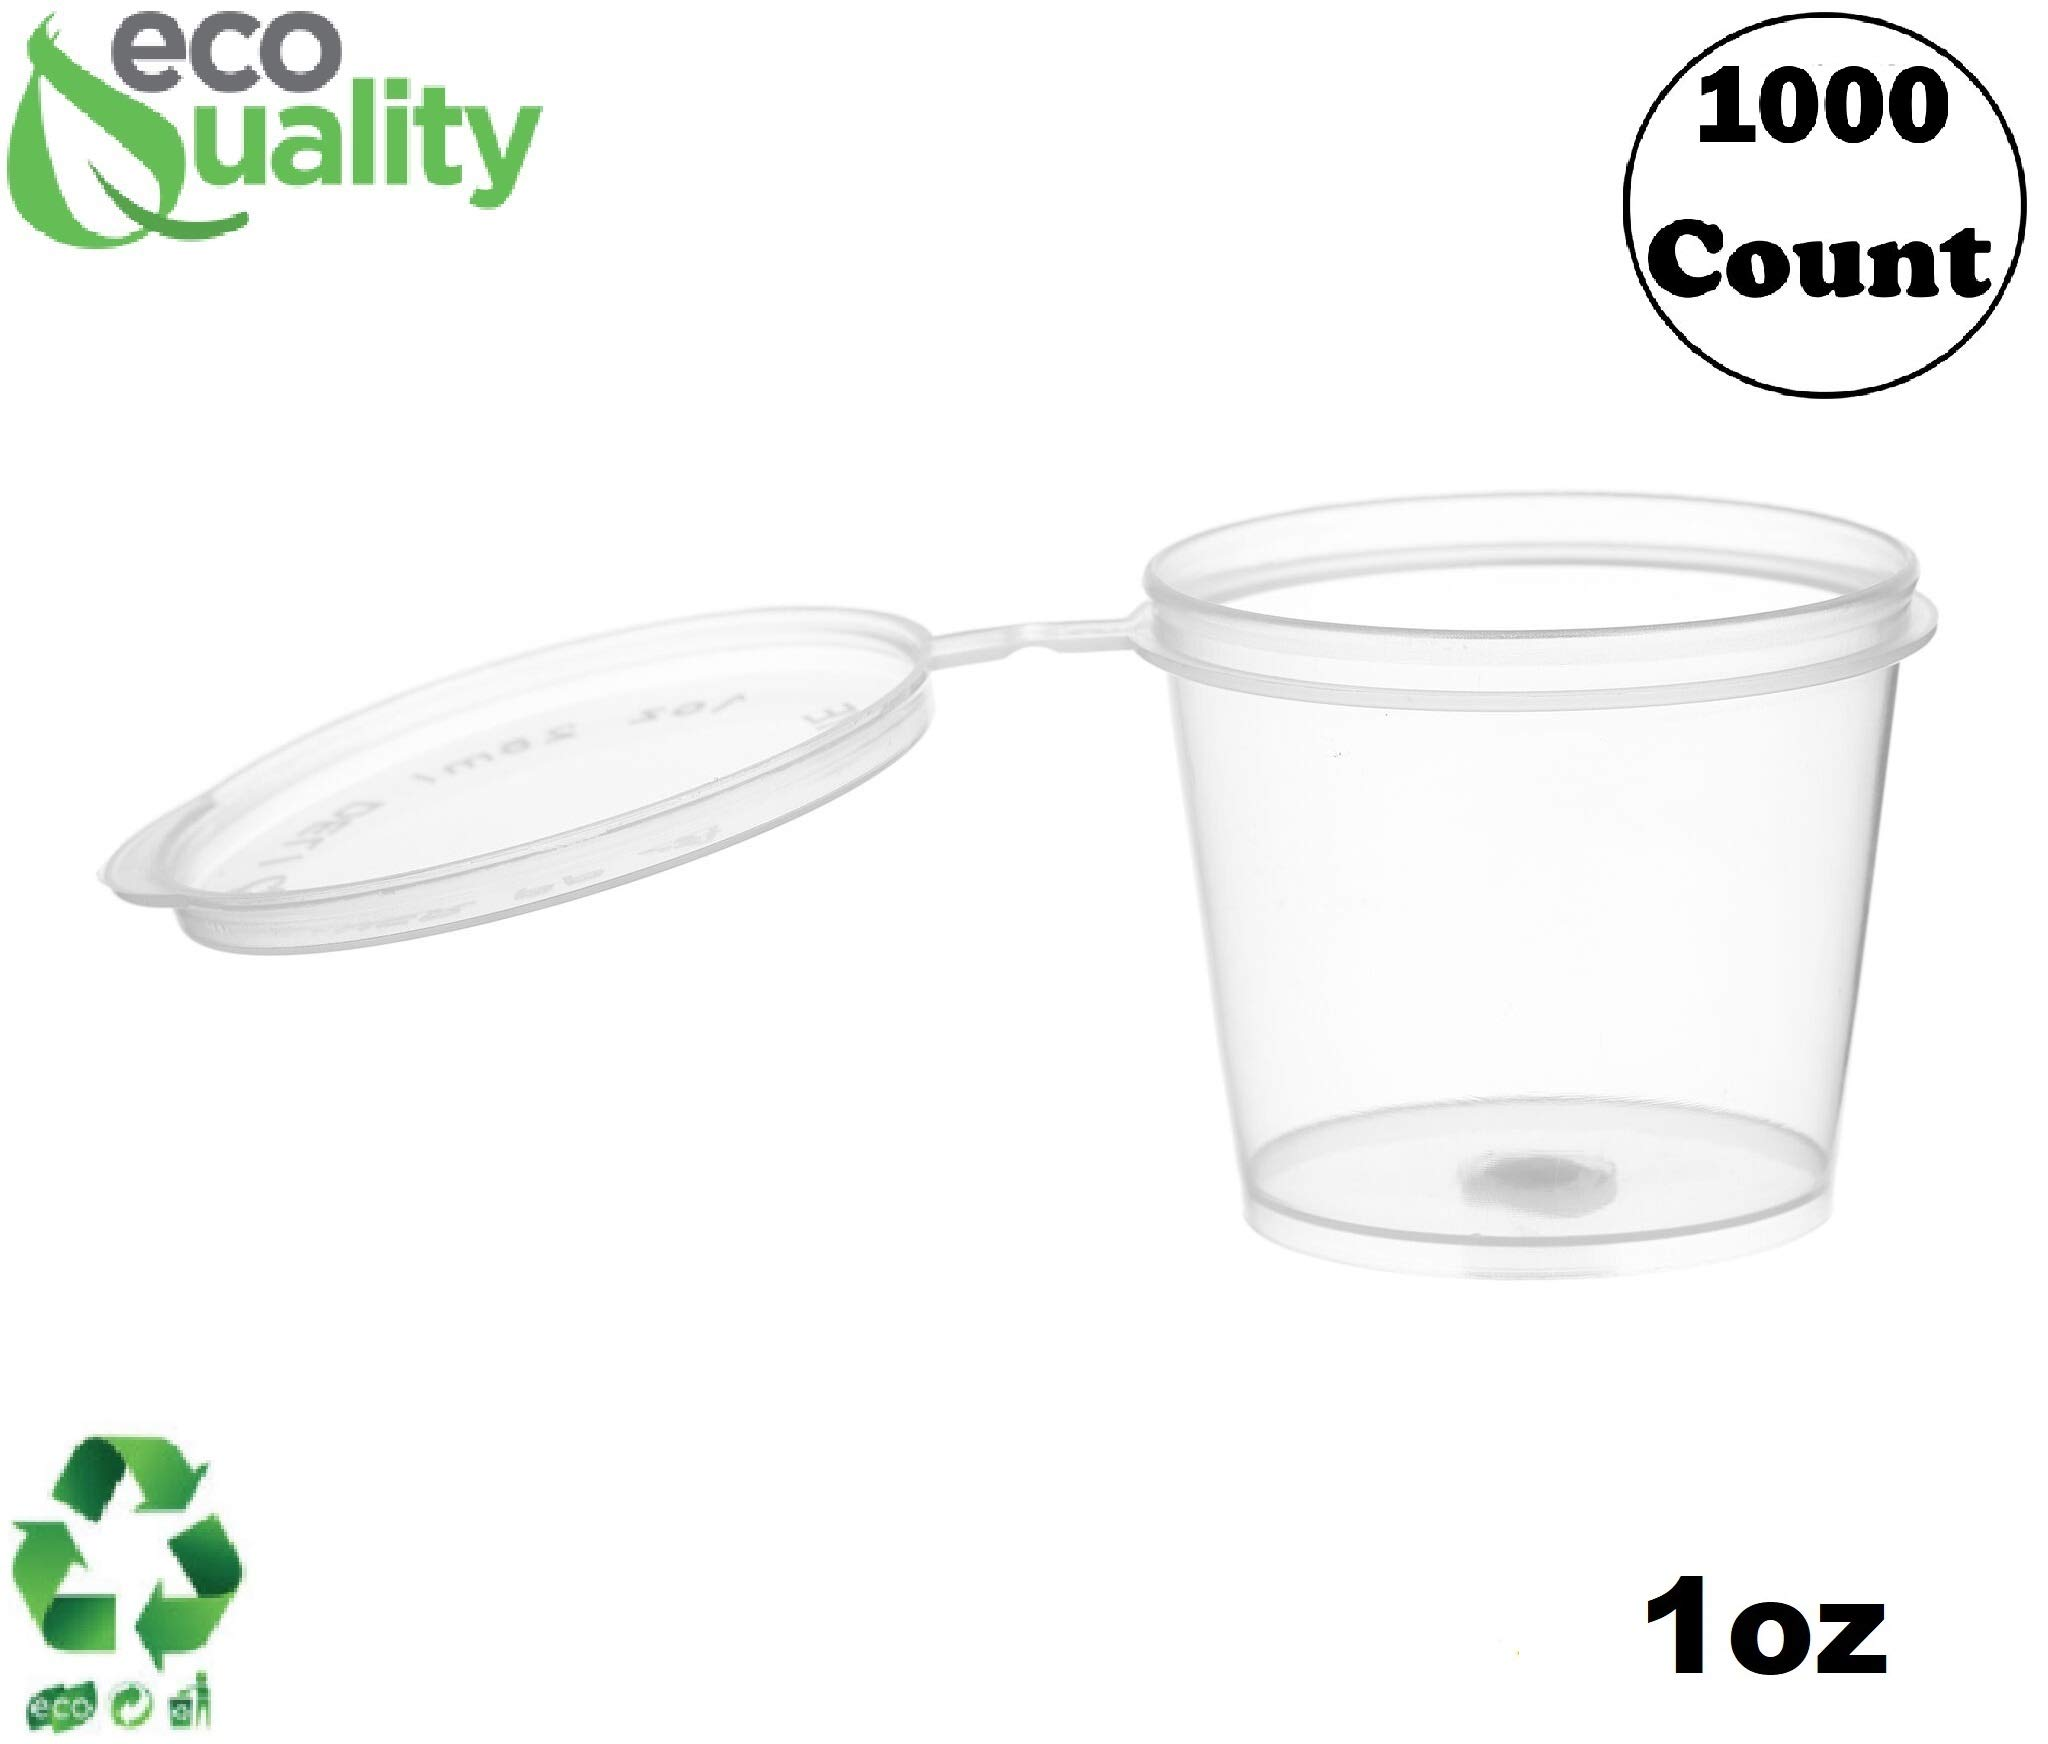 EcoQuality [1000 Pack] 1 Oz Leak Proof Plastic Condiment Souffle Containers with Attached Lids - Portion Cup with Hinged Lid Perfect for Sauces, Samples, Slime, Jello Shot, Food Storage & More! by EcoQuality